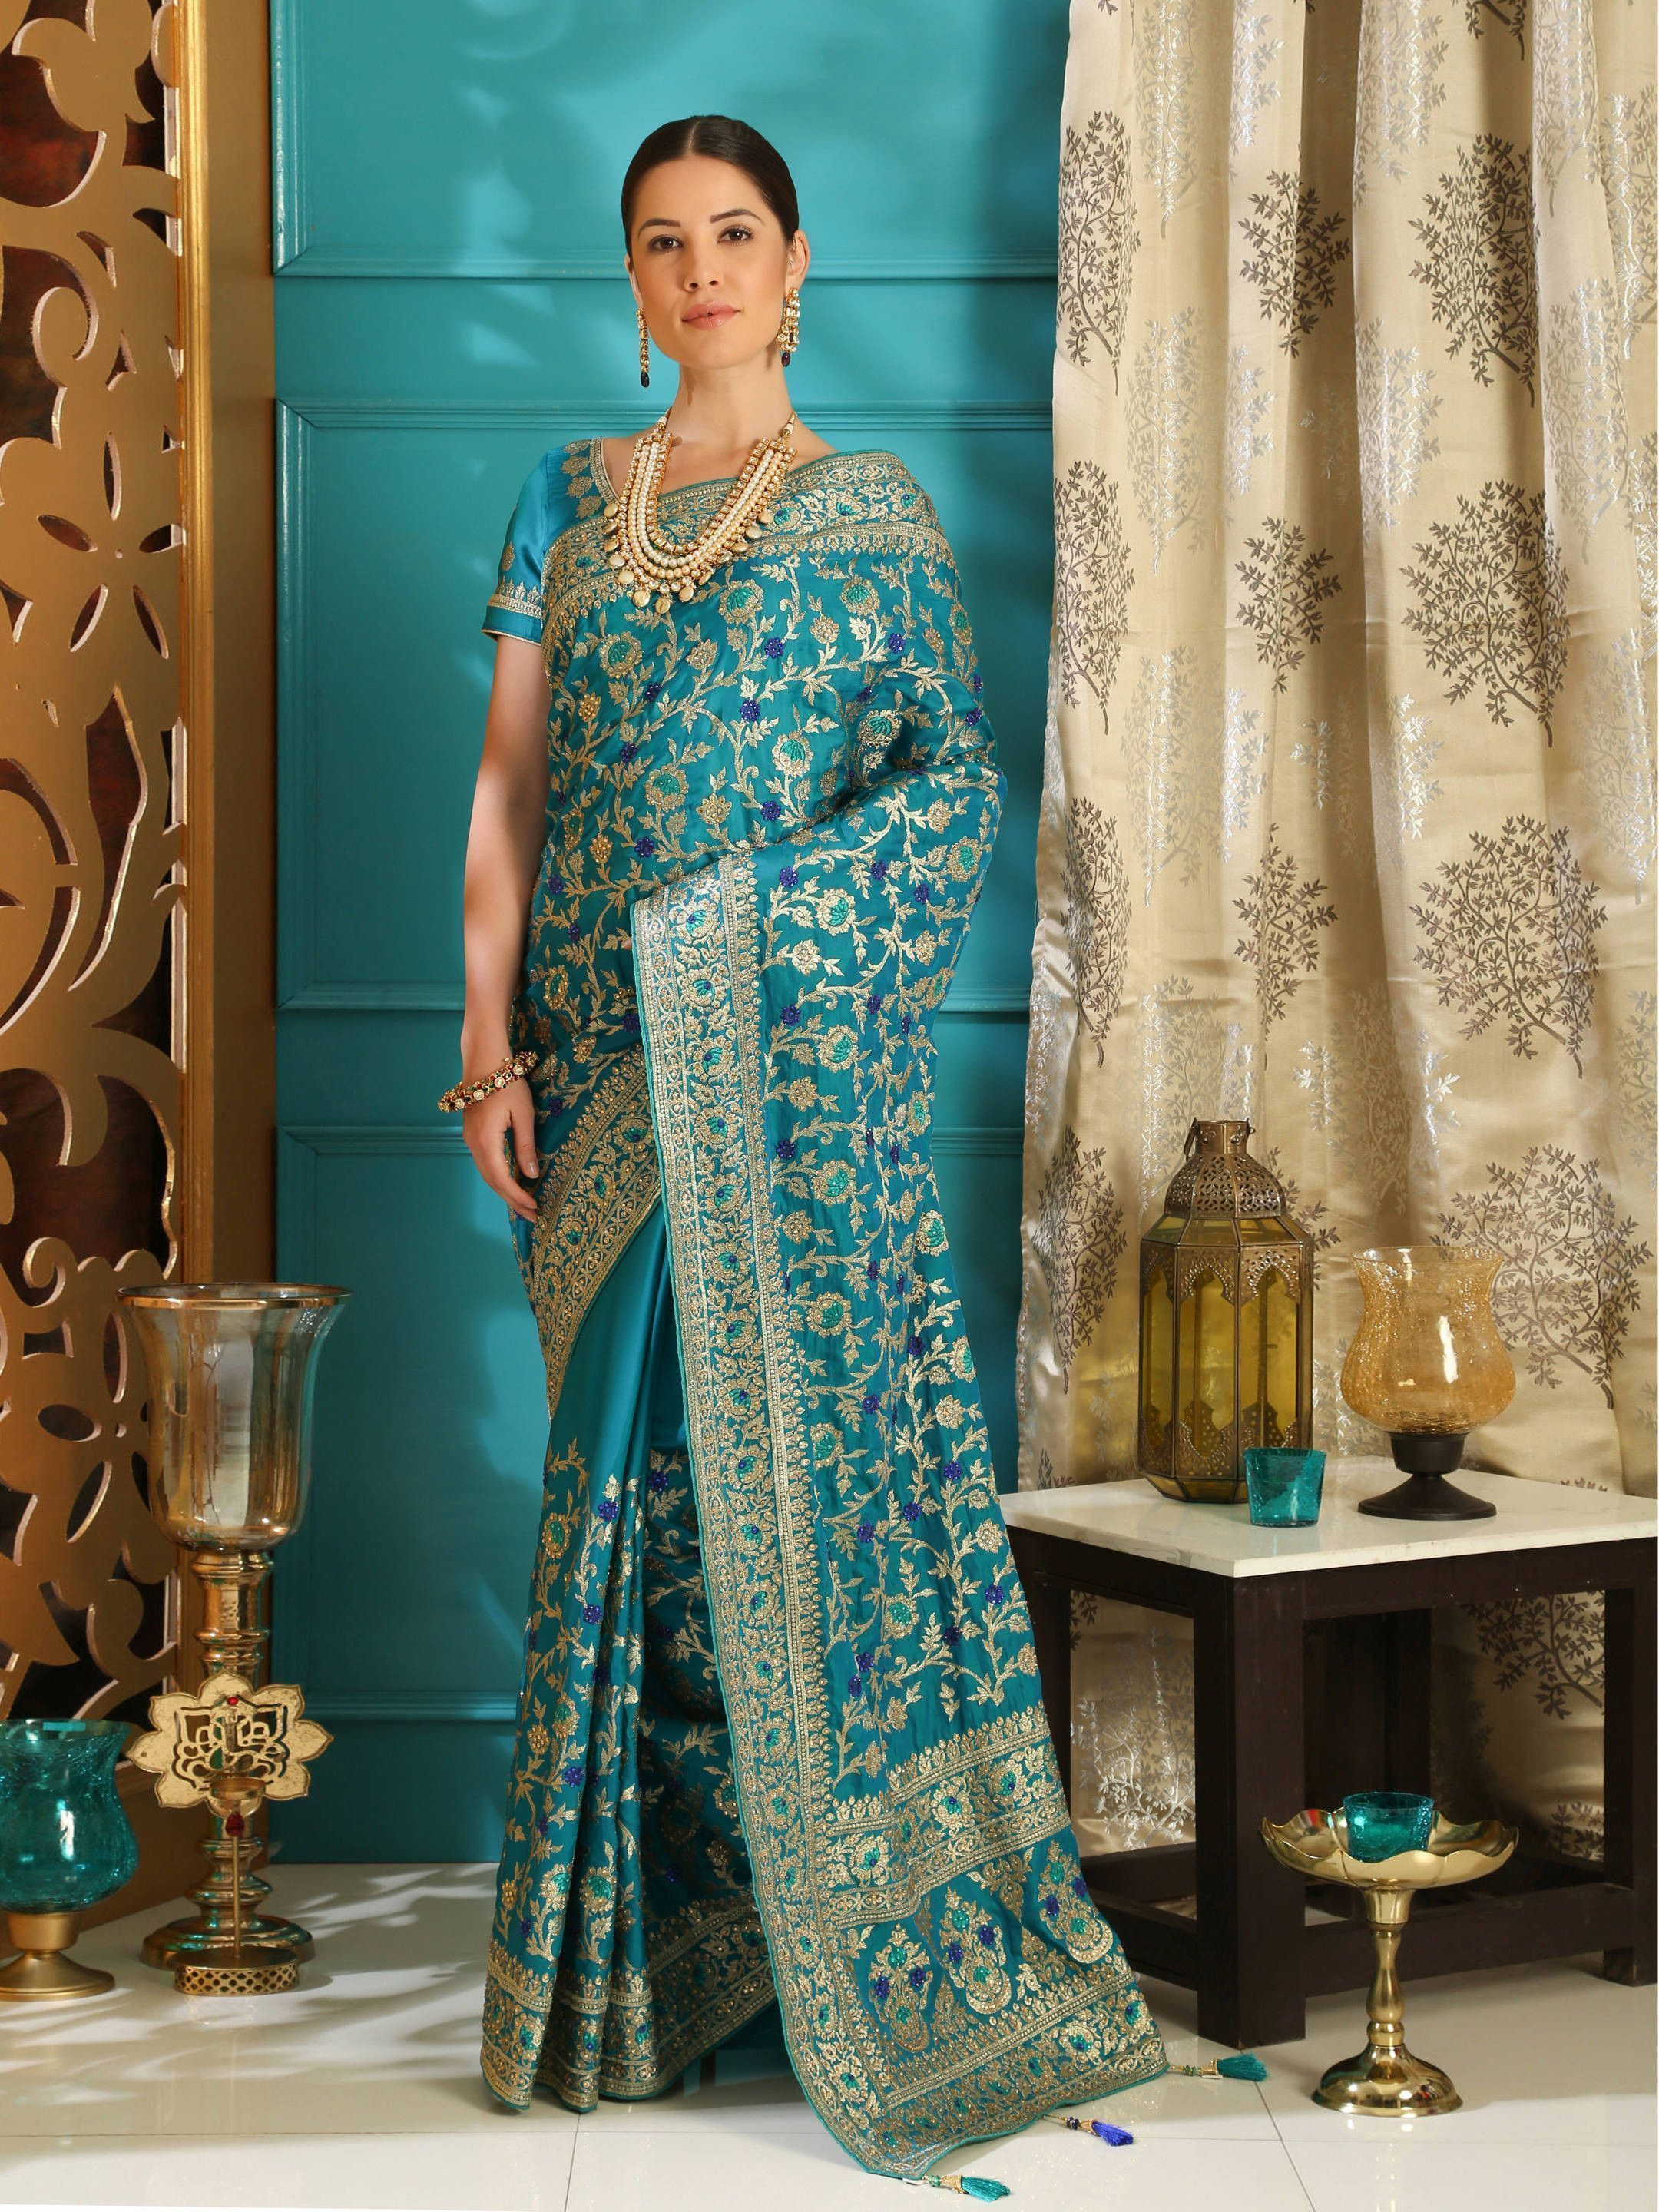 Teal Blue Embroidered Silk Wedding Saree With Blouse